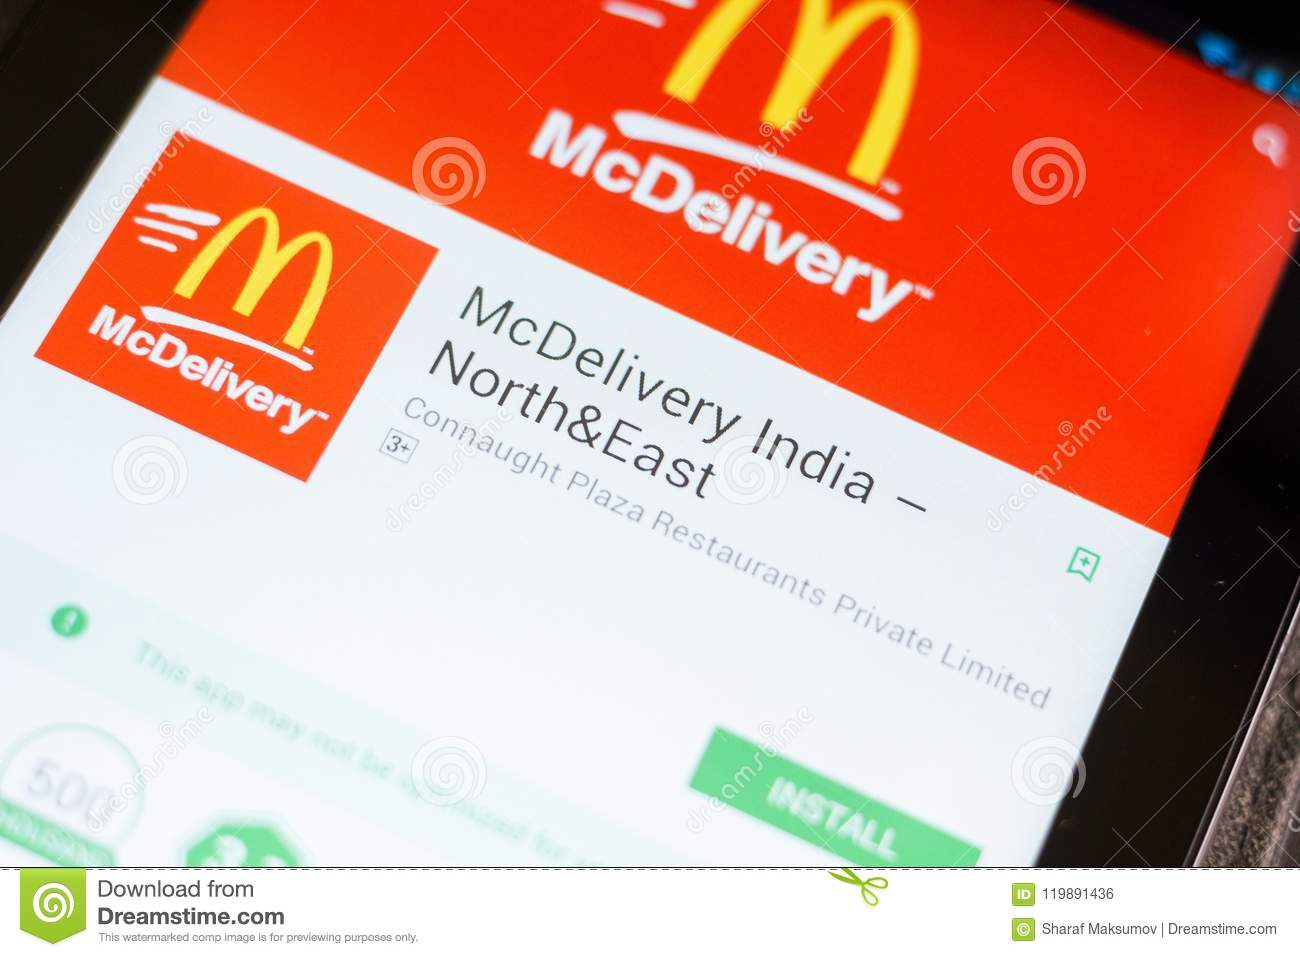 Ryazan, Russia - June 24, 2018: McDelivery India, McDonalds